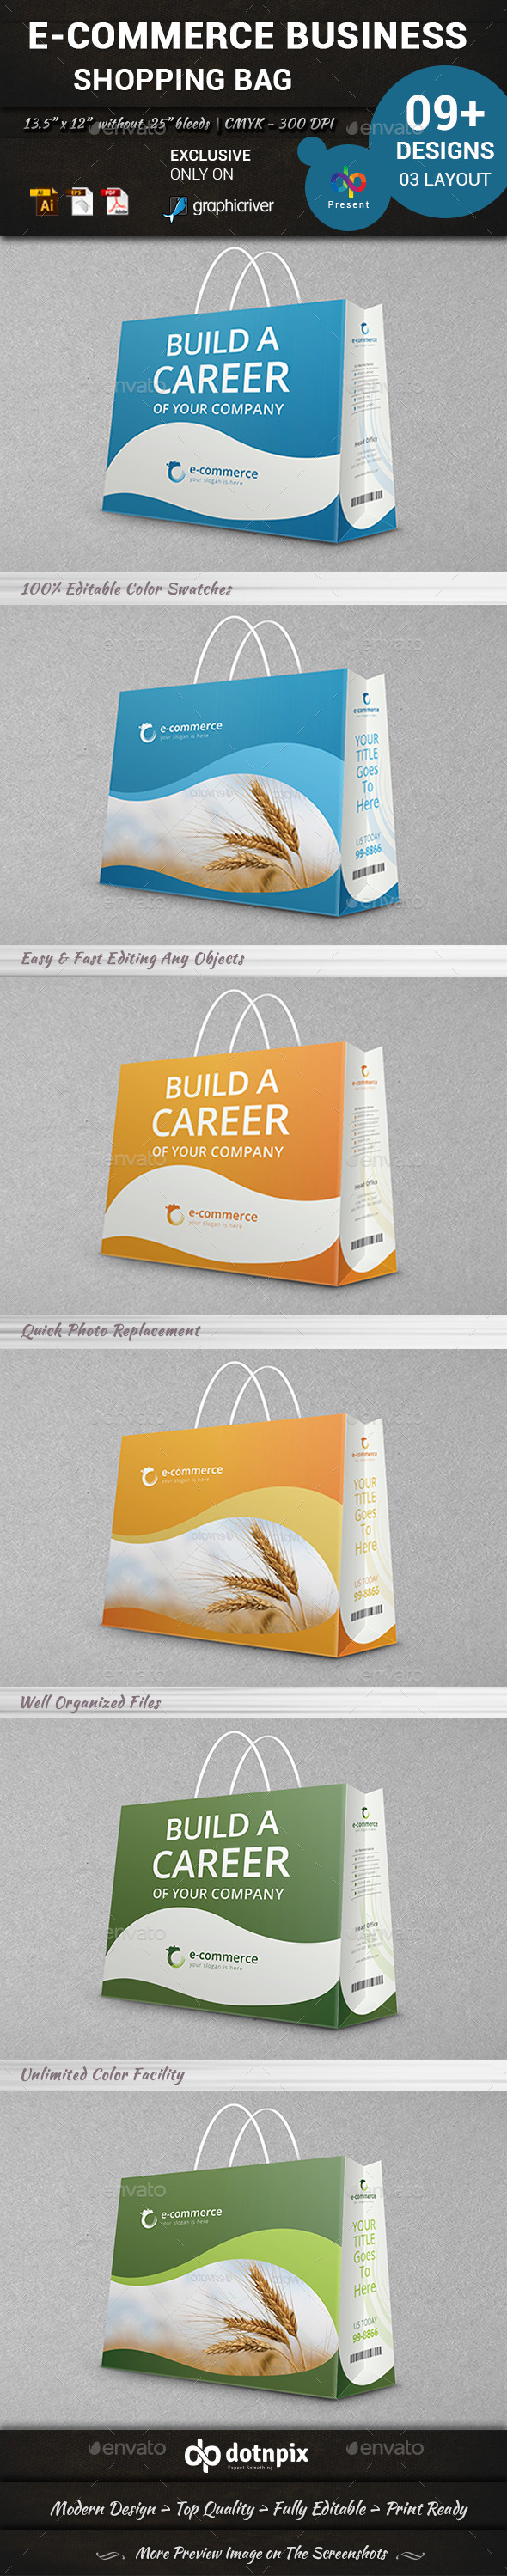 GraphicRiver E-Commerce Business Shopping Bag 10324589